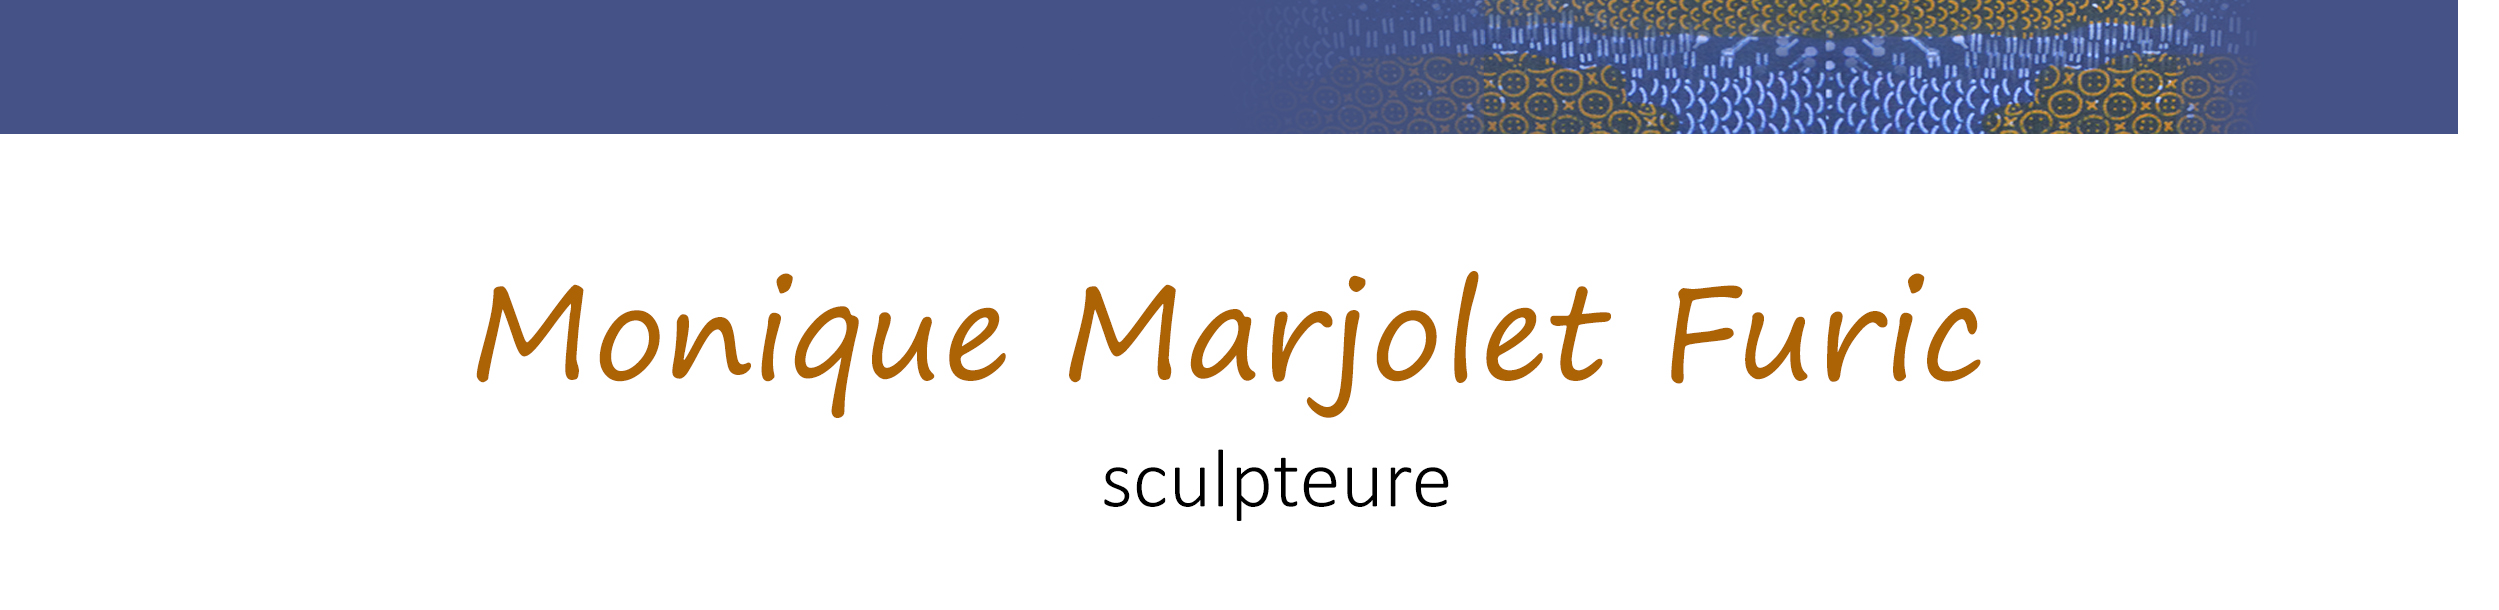 Monique Marjolet Furic - Sculptures Logo